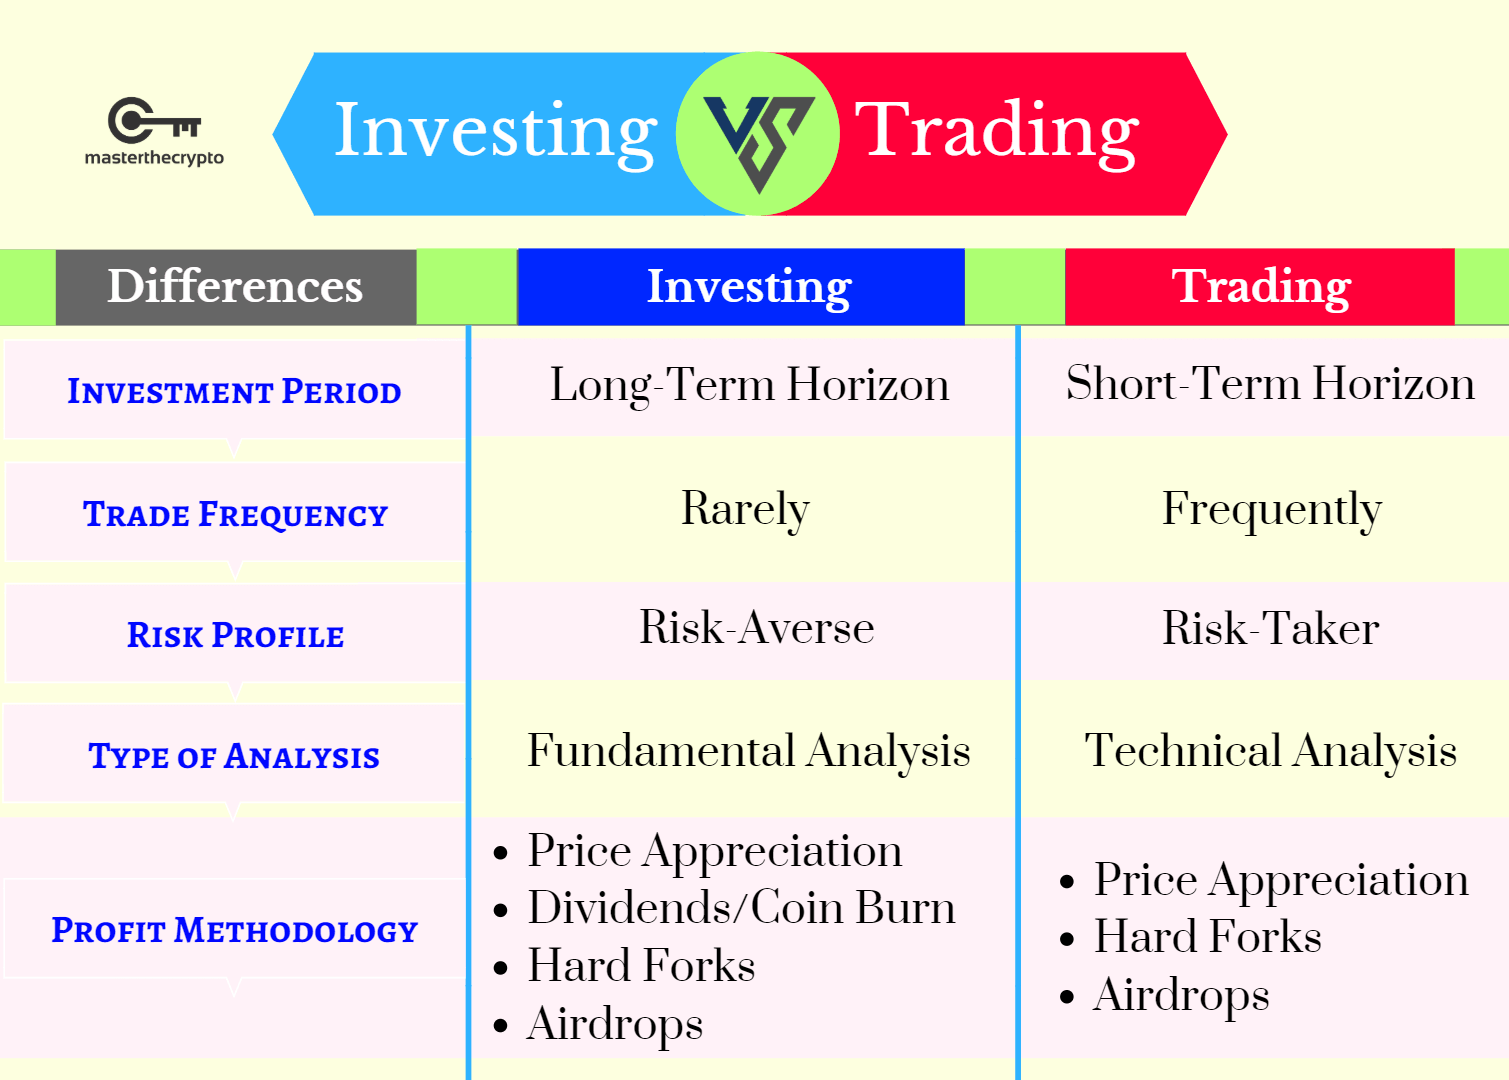 Investing vs Trading, Cryptocurrency Investing vs Trading, difference between investing and trading, investing and trading, crypto investing vs trading, crypto investing vs trading